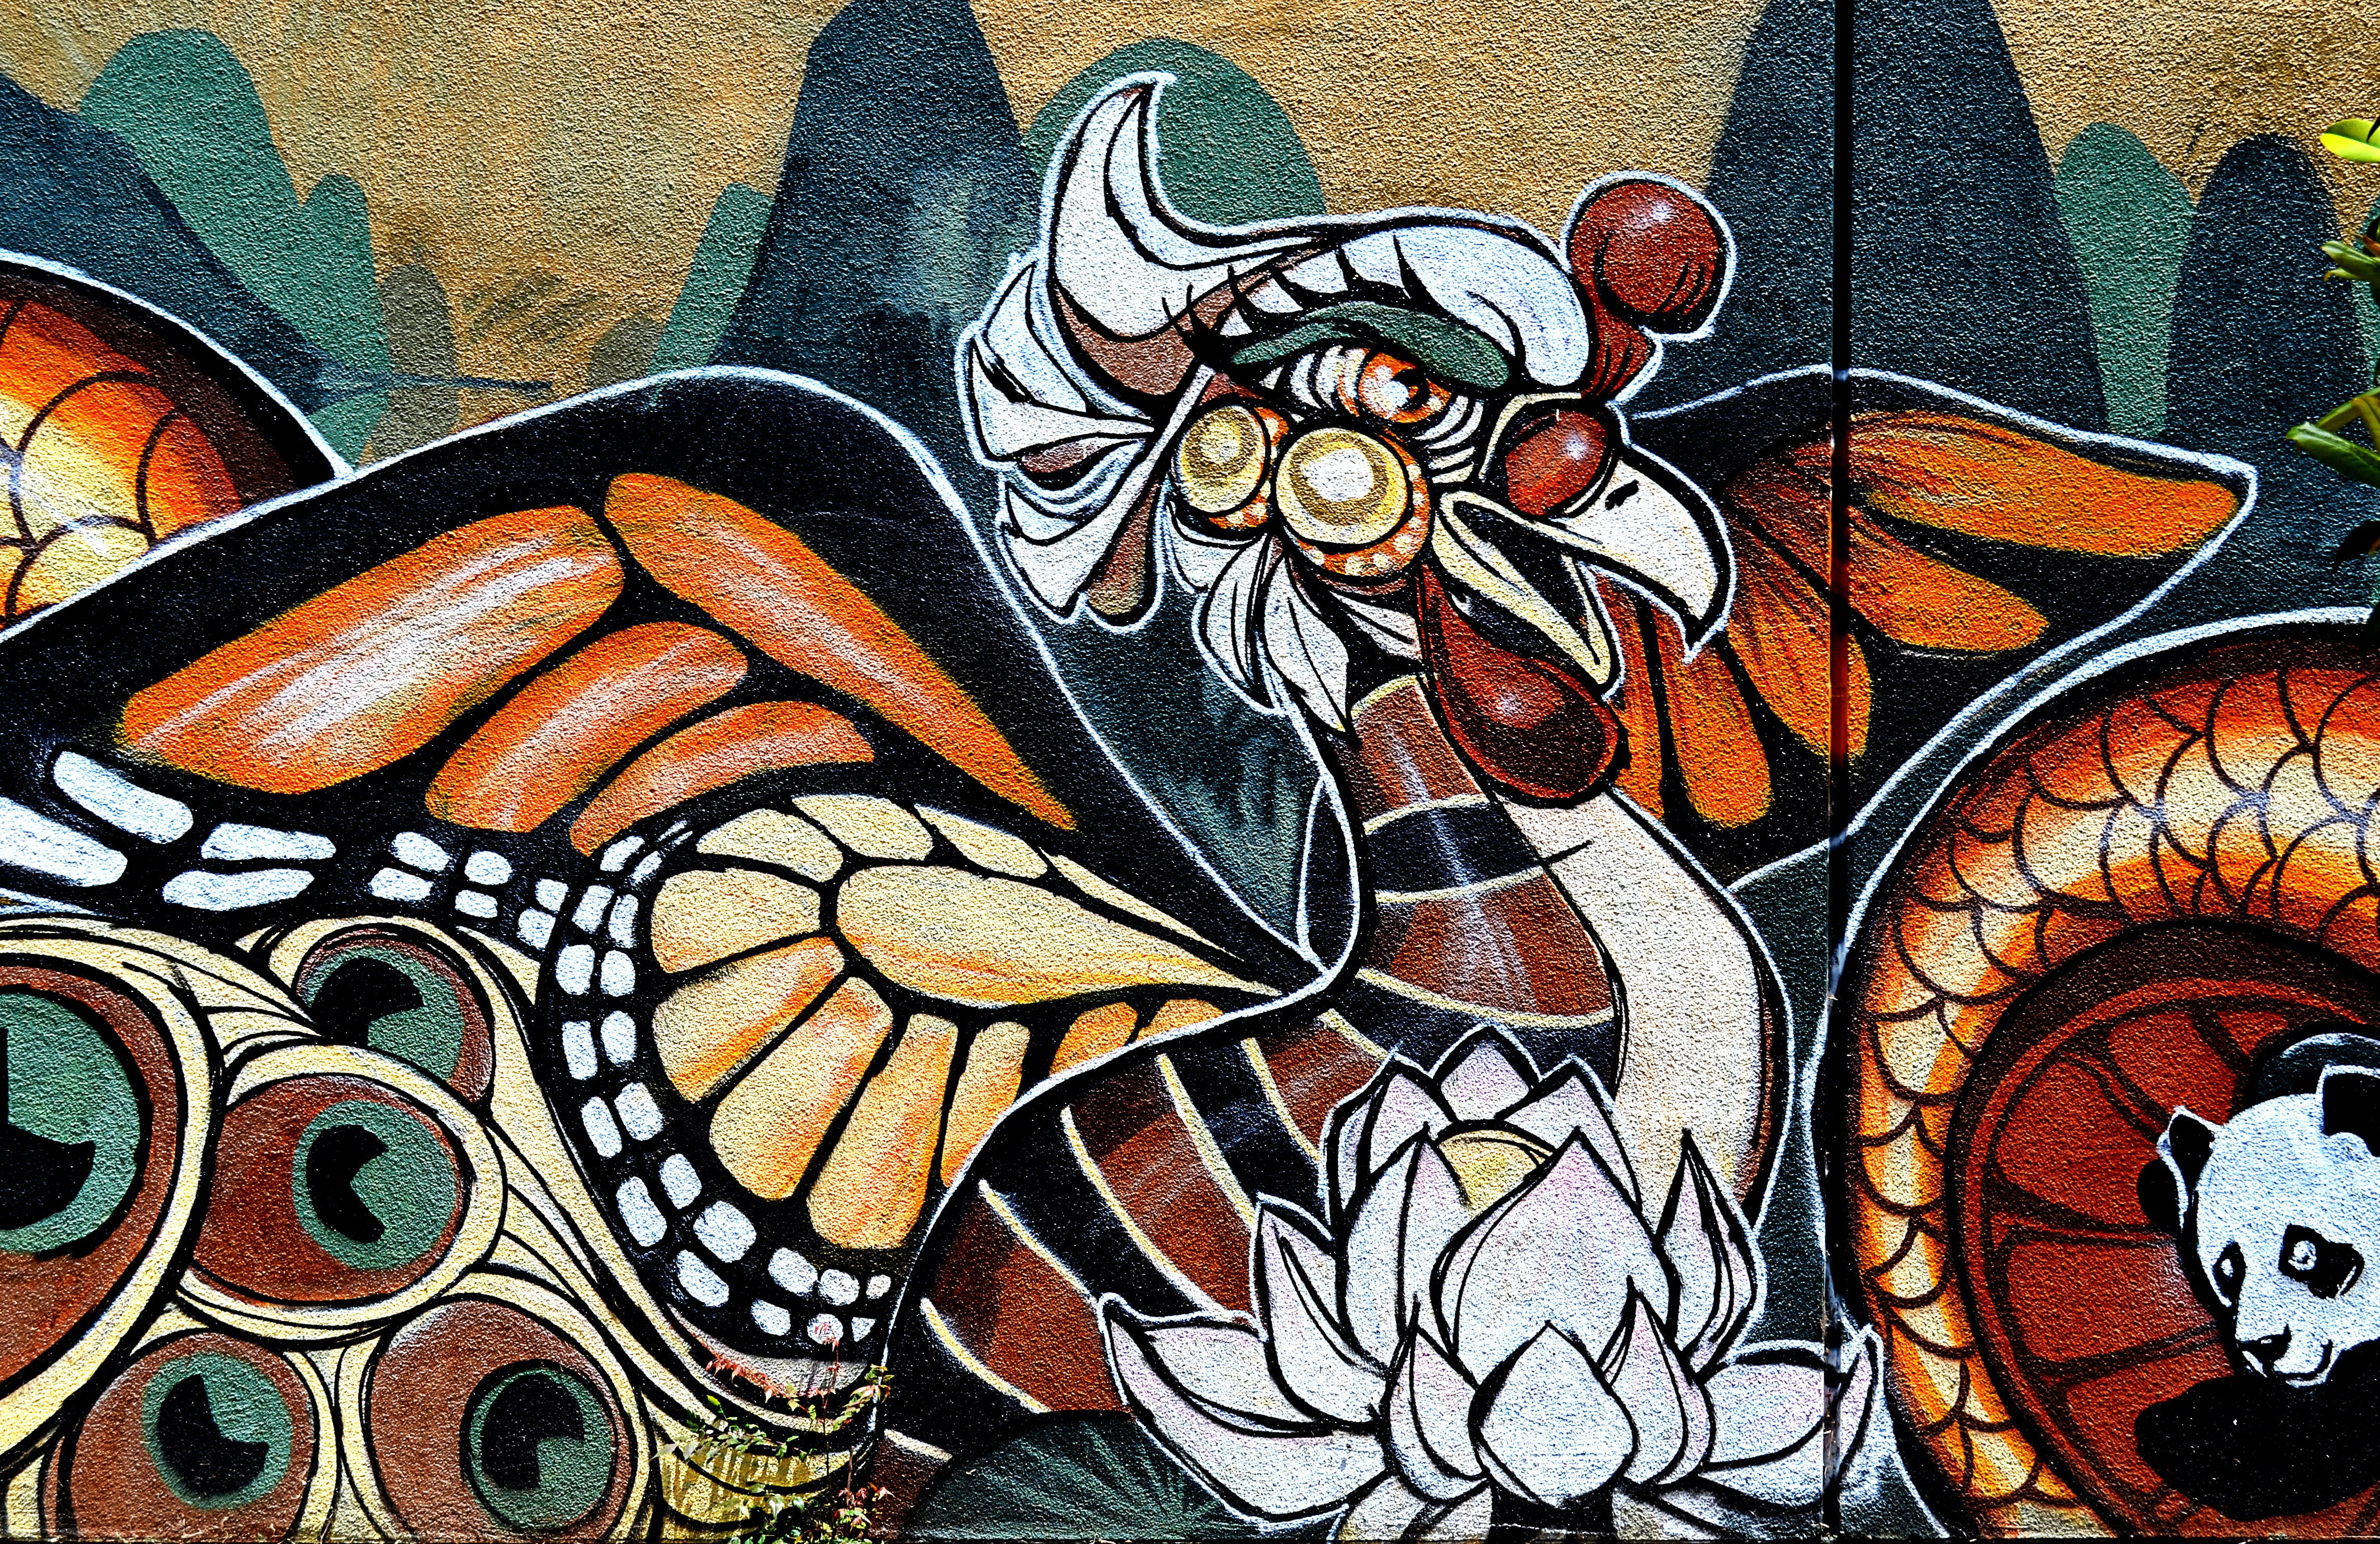 Abstract street art of animals and flowers in Oakland